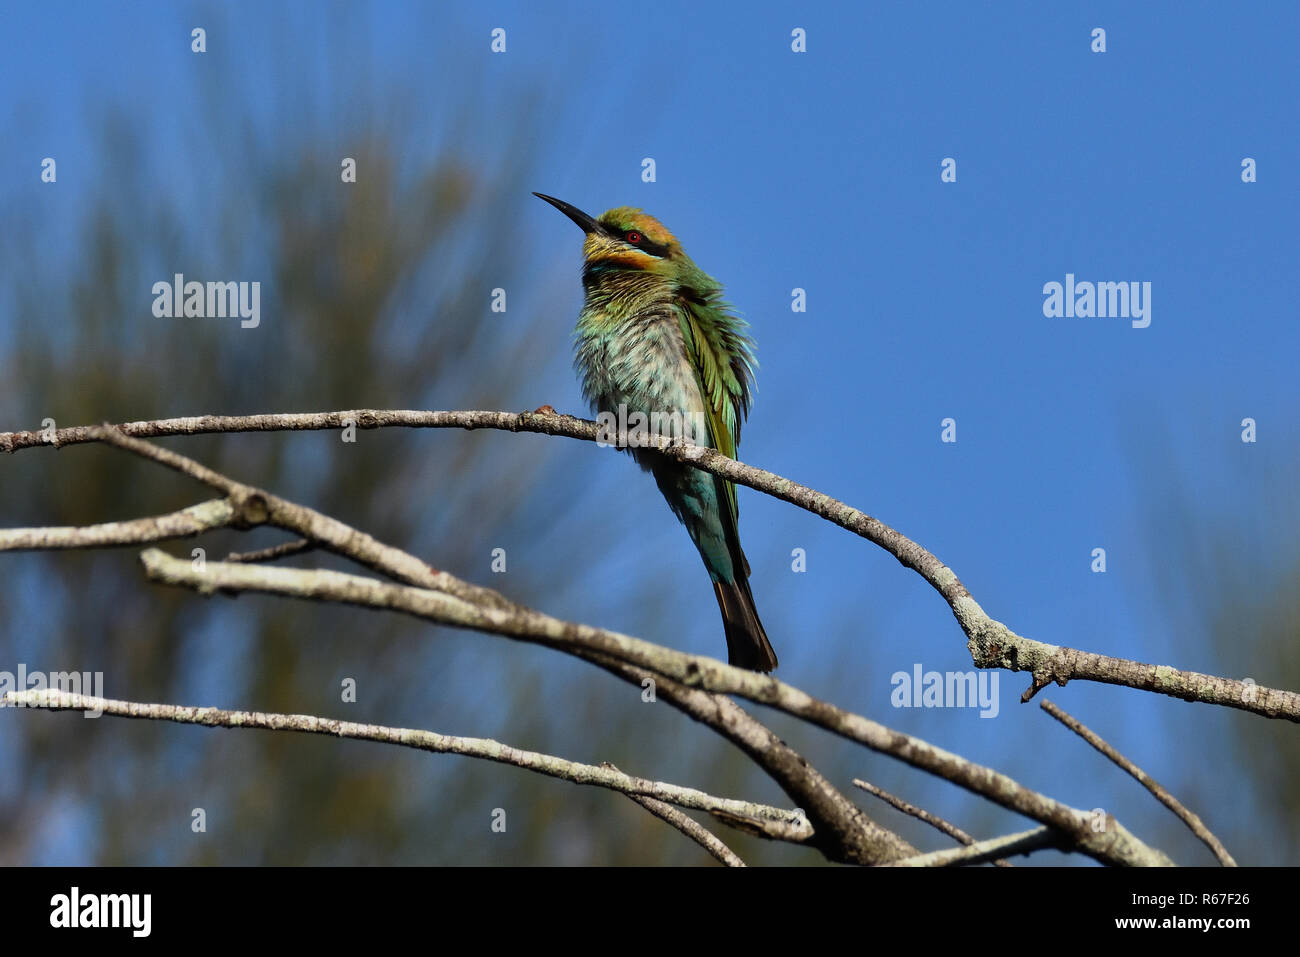 An Australian, Queensland Female Rainbow Bee-eater ( Merops ornatus ) perched on a tree branch with its feathers all fluffed up - Stock Image